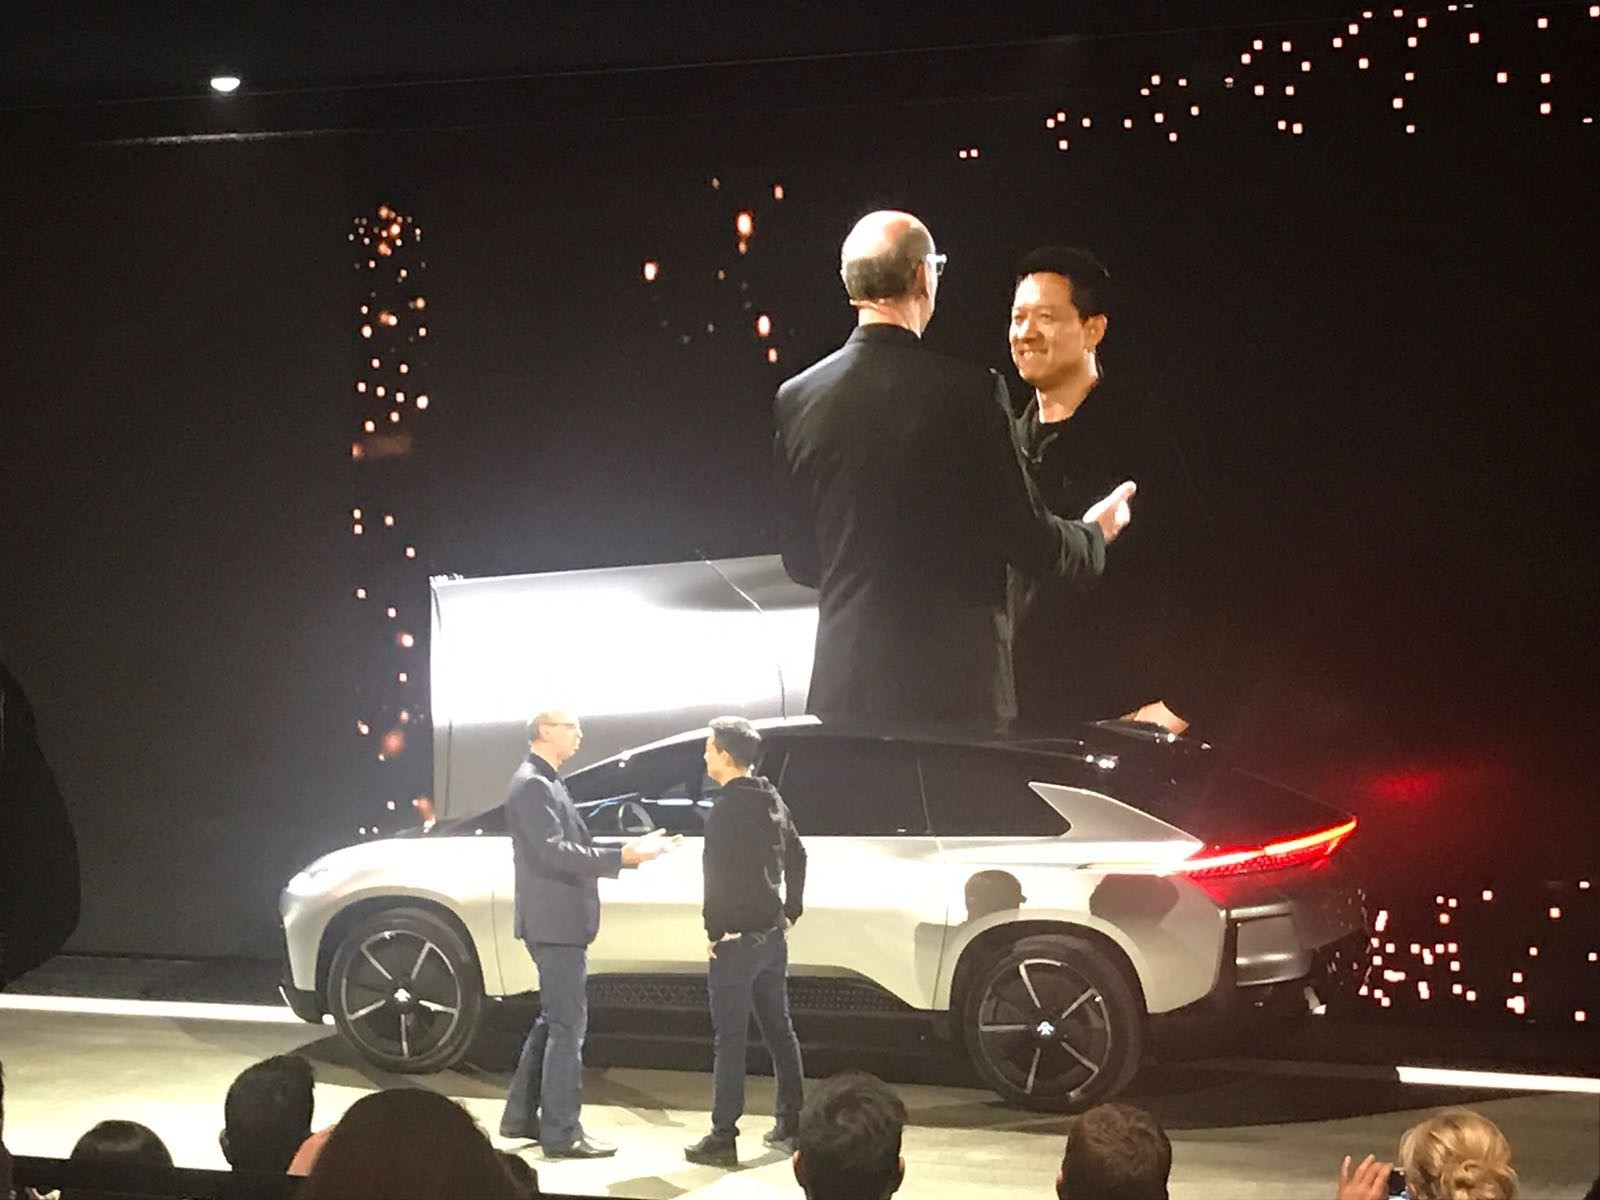 Nick Sampson, SVP of R&D & Engineering for Faraday Futures welcomes Jia Yuetieng, Chief Executive Officer of LeEco to the stage during their press conference at CES 2017.